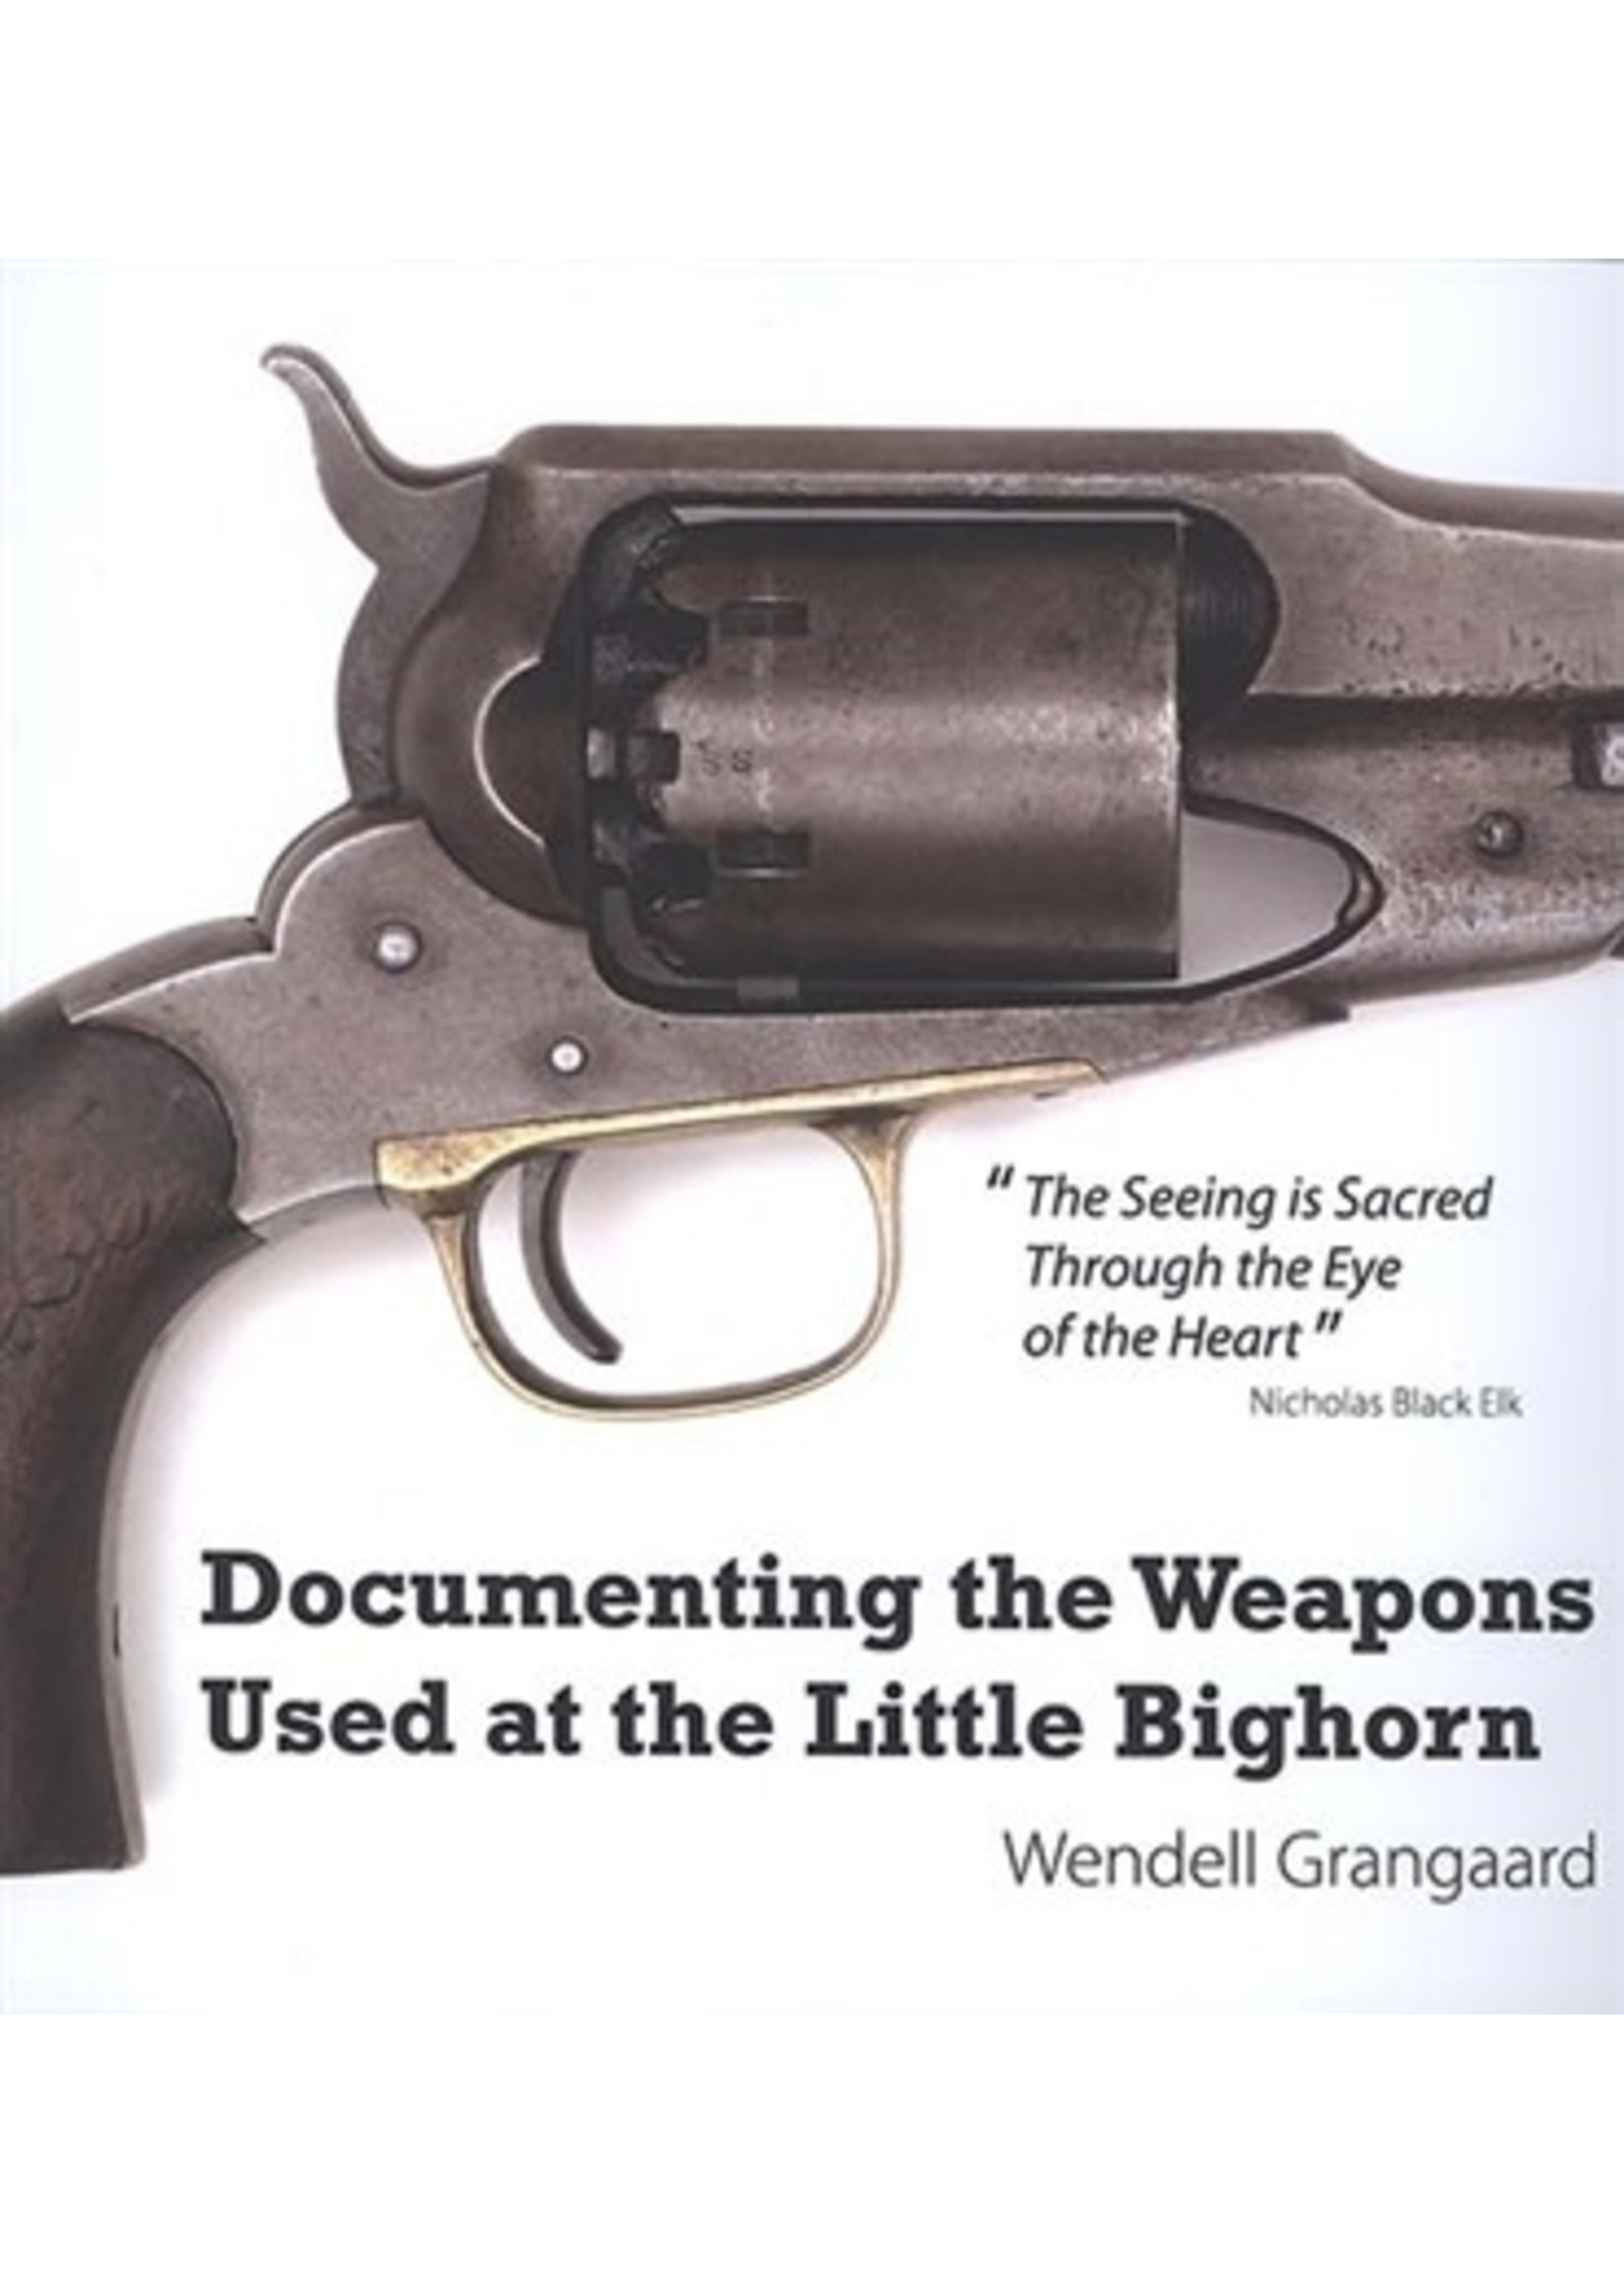 Documenting the Weapons Used at the Little Bighorn by Wendell Grangaard